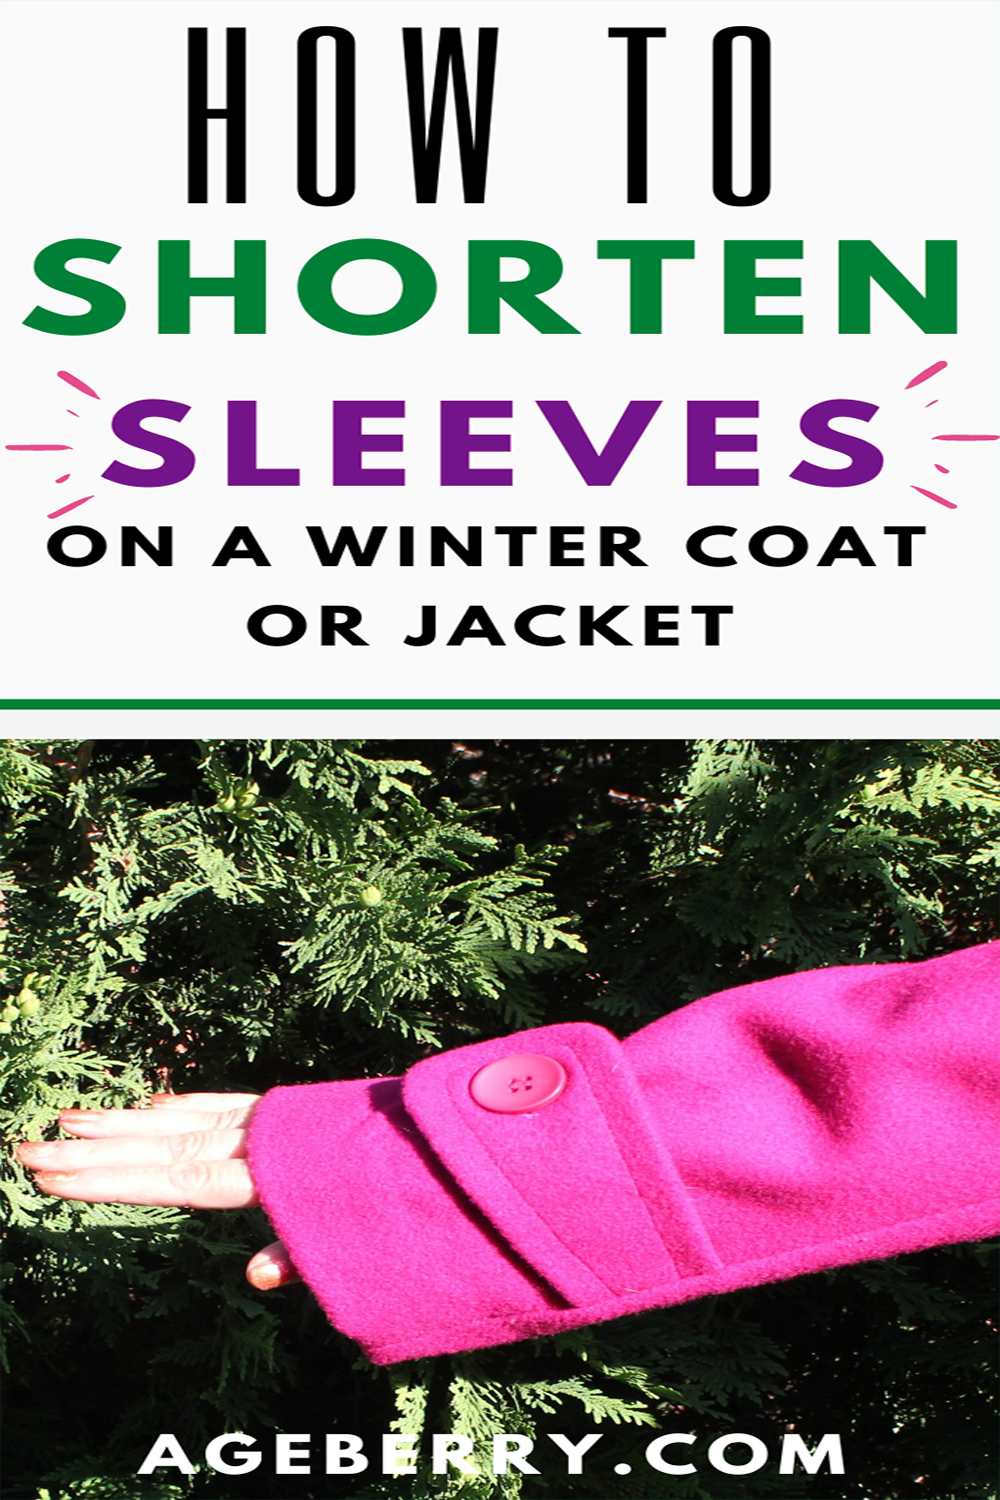 How to shorten sleeves on a winter coat or jacket with lining - alteration tutorial